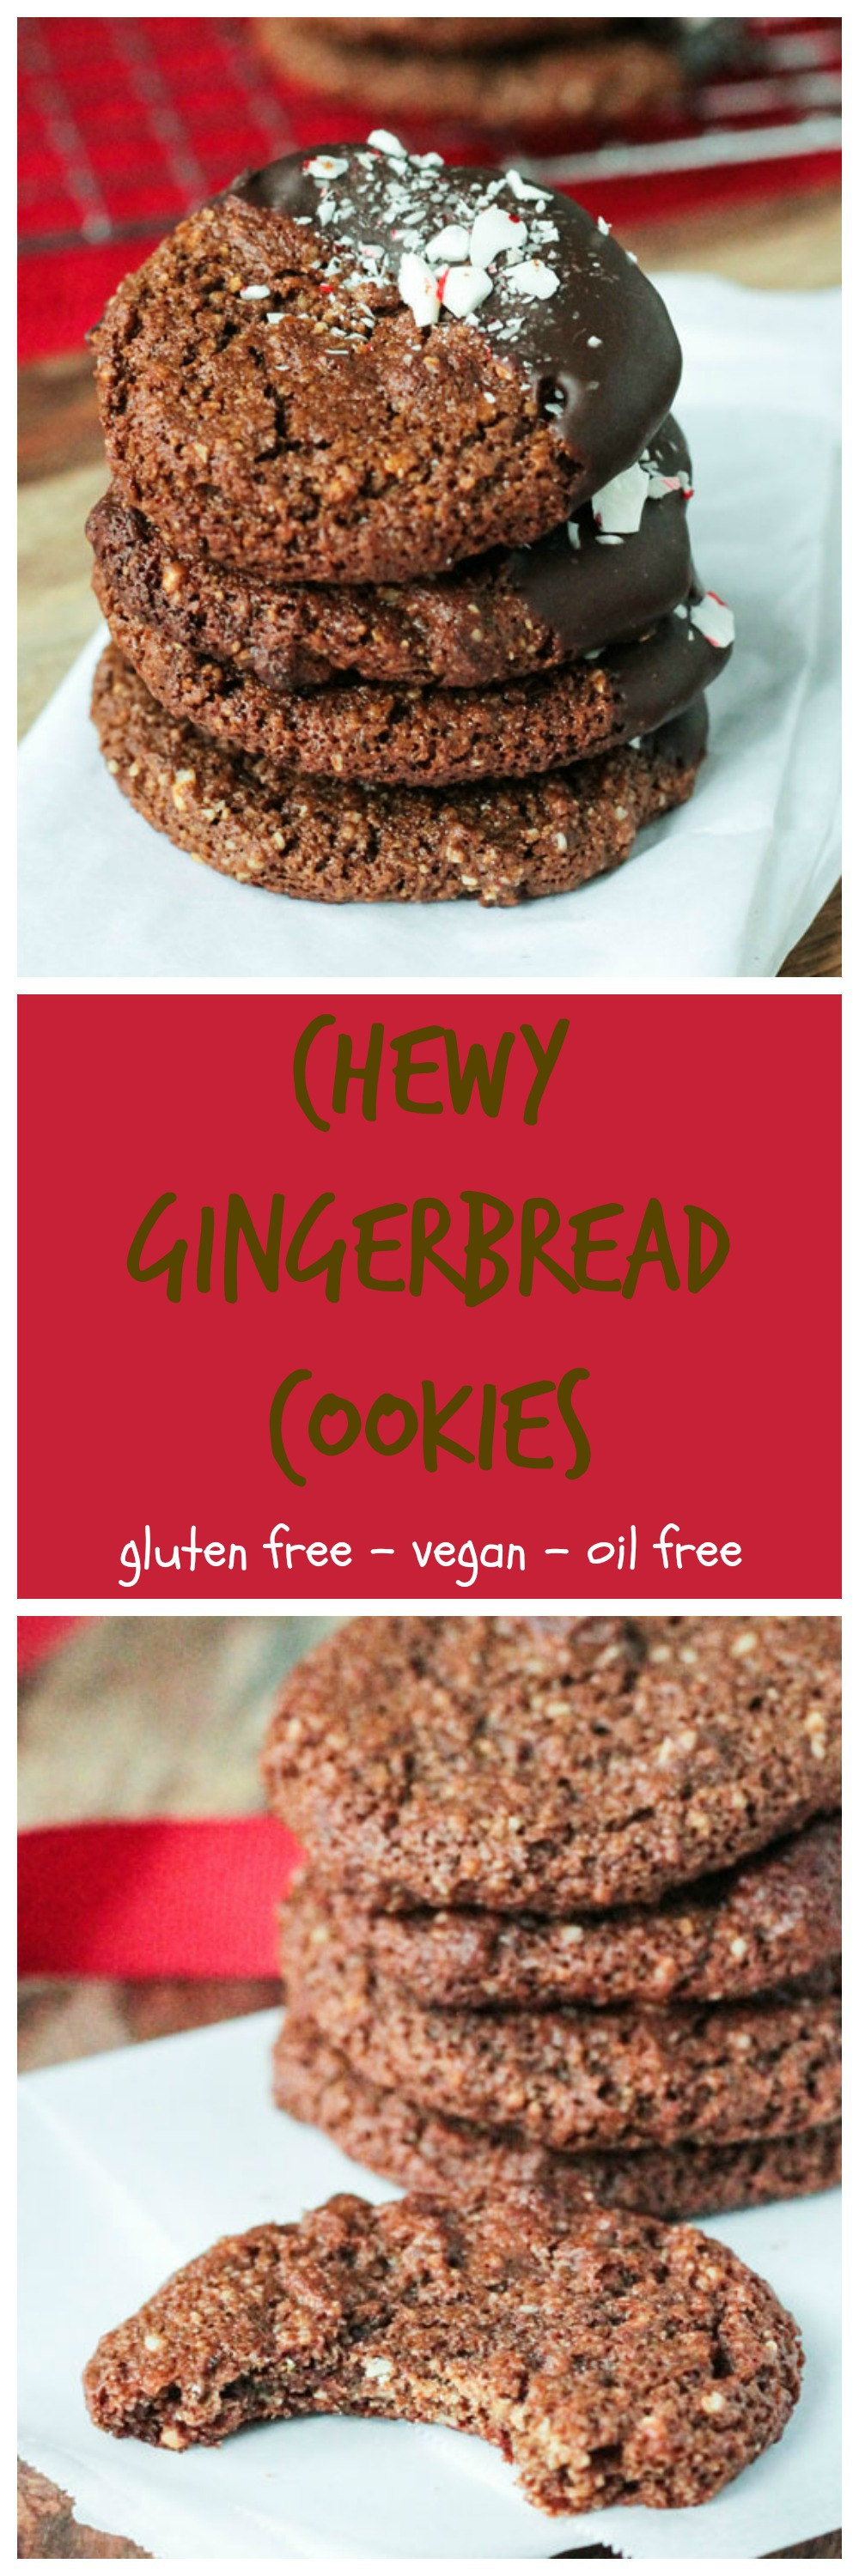 Chewy Gluten Free Gingerbread Cookies - crispy on the outside, perfectly chewy on the inside, loaded with flavor and totally good for you! These cookies will be a holiday staple for years to come!